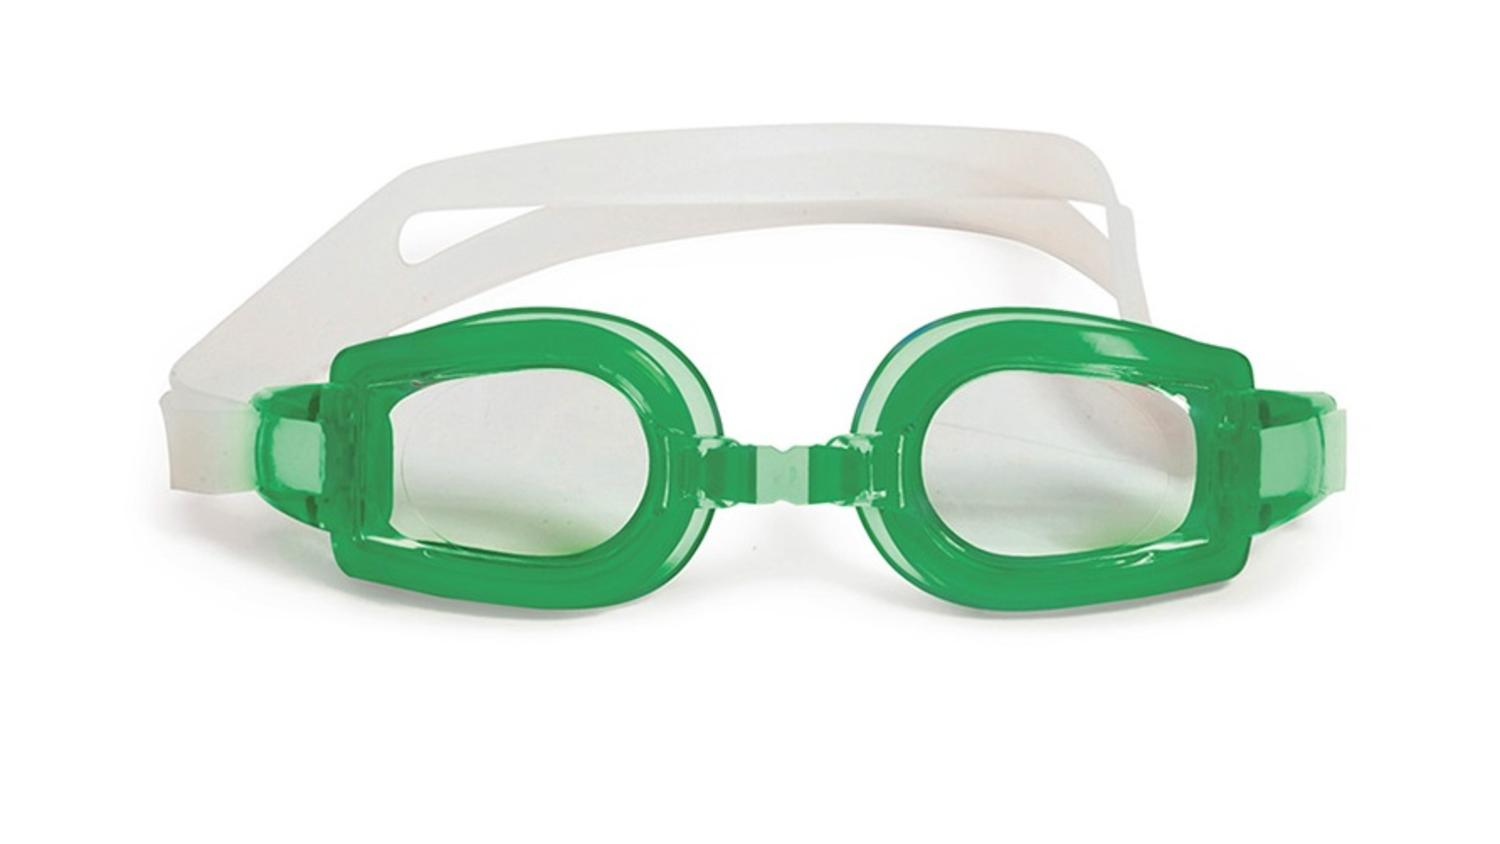 """6.25"""" Vantage Competition Green Goggles Swimming Pool Accessory for Children, Juniors and Teens by Swim Central"""